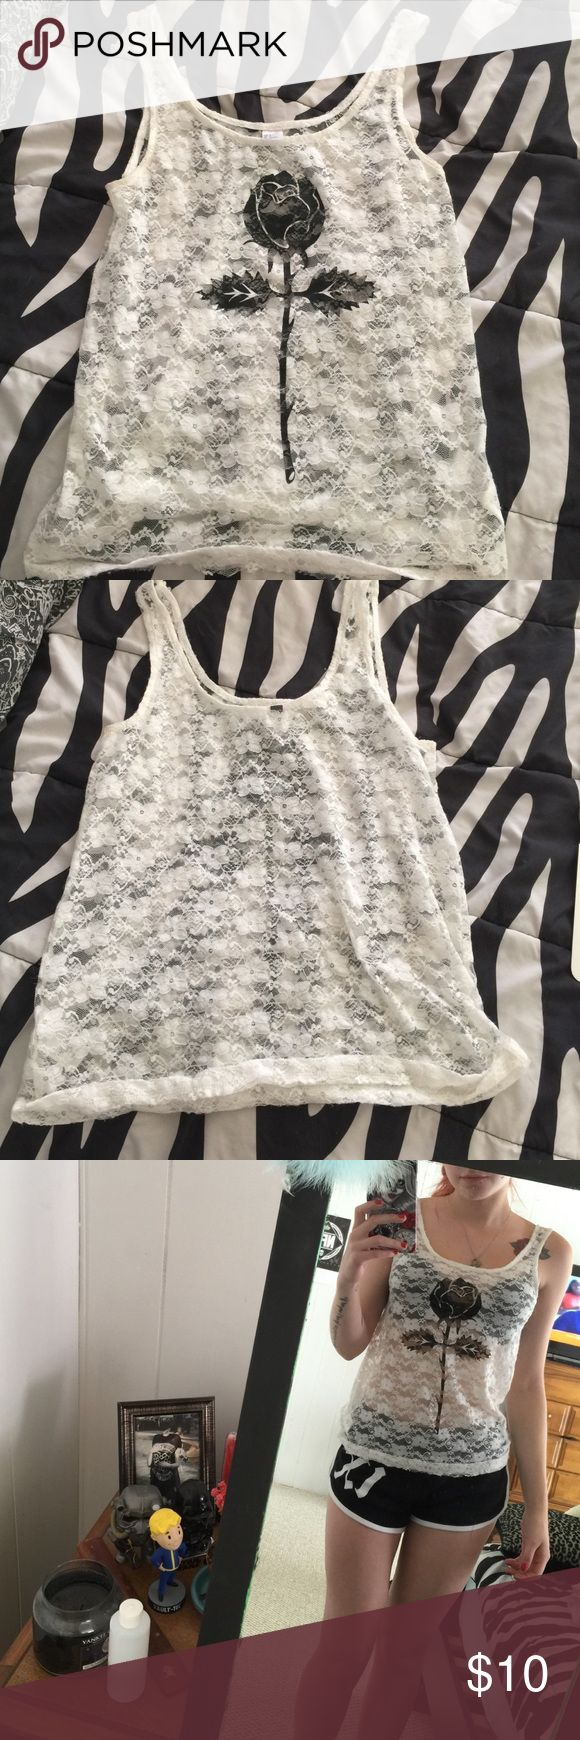 White see through tank top White see through tank top with black rose on the font and flower detailing perfect bikini coverup never worn H&M Tops Tank Tops